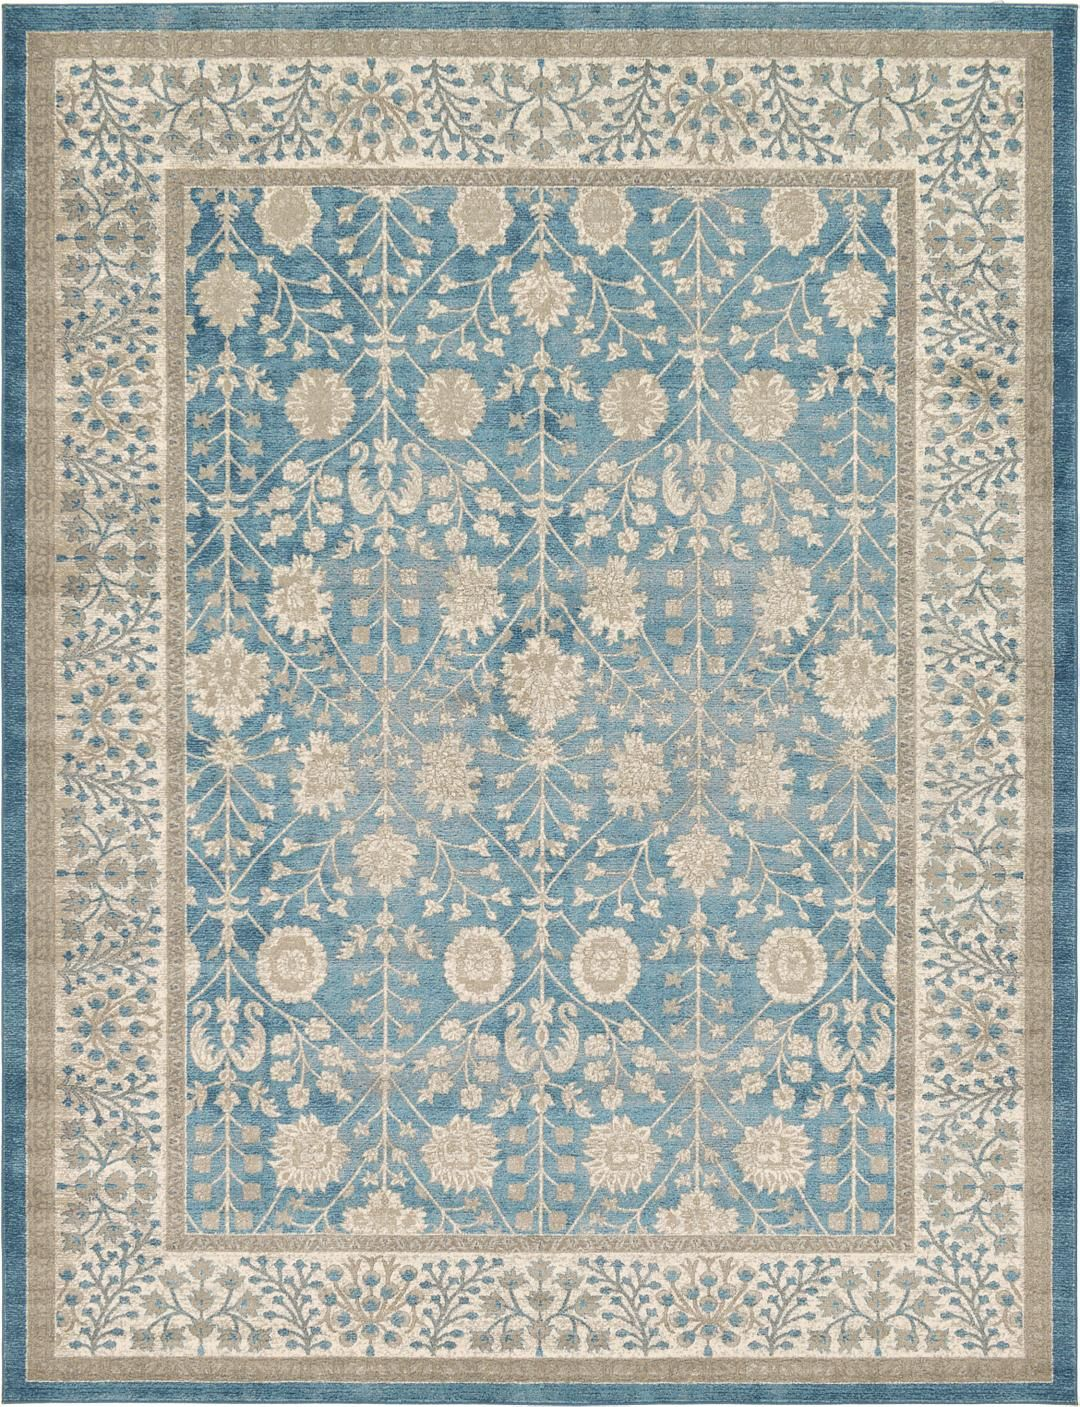 rugs chandra rup grey in blue brown hand area rug flat by products rupec design tufted collection